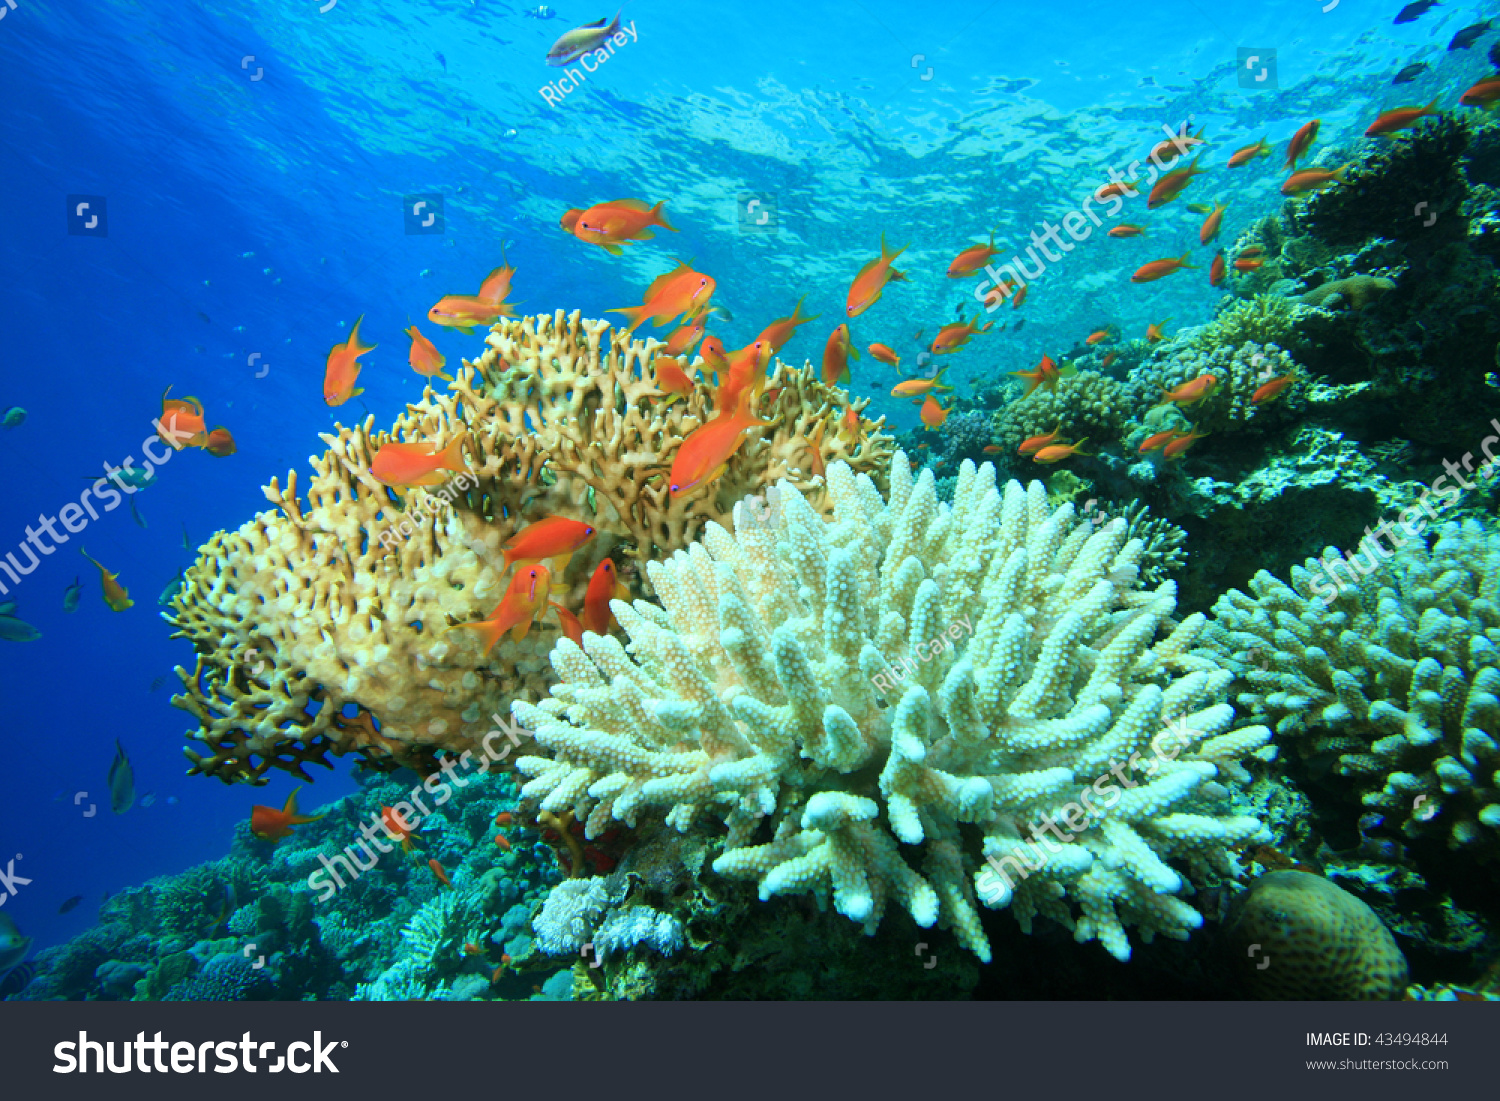 Coral Reef With Acropora And Fire Corals Stock Photo 43494844 : Shutterstock